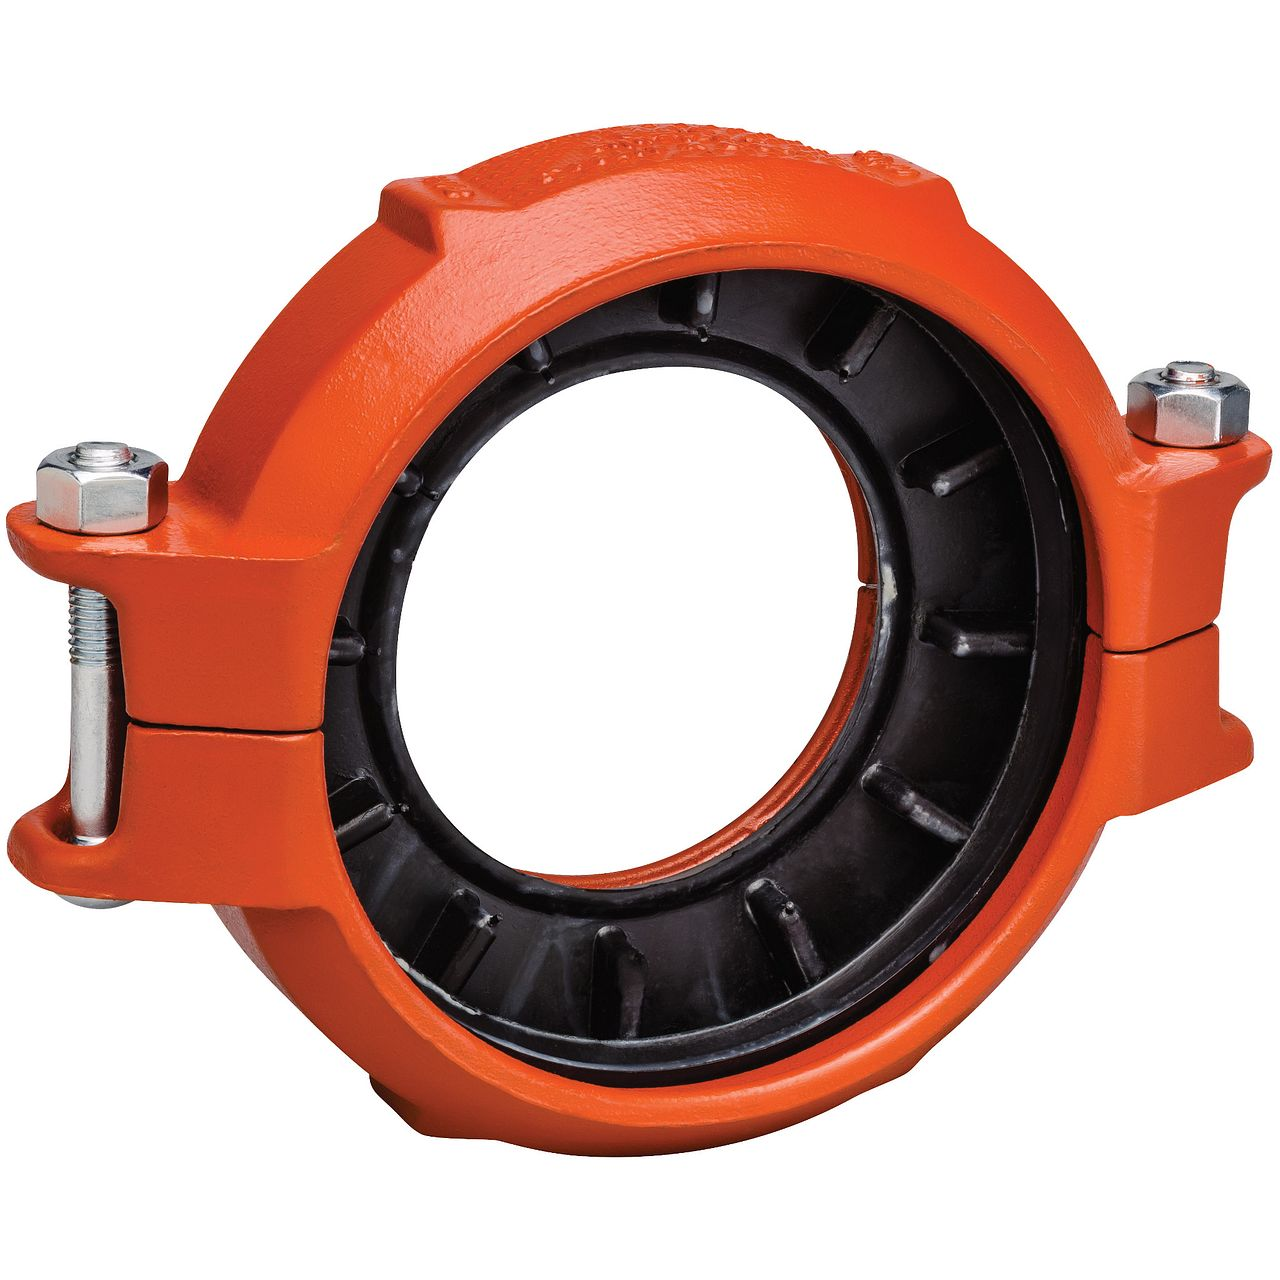 Cpvc pipe joining pvc grooved solutions victaulic